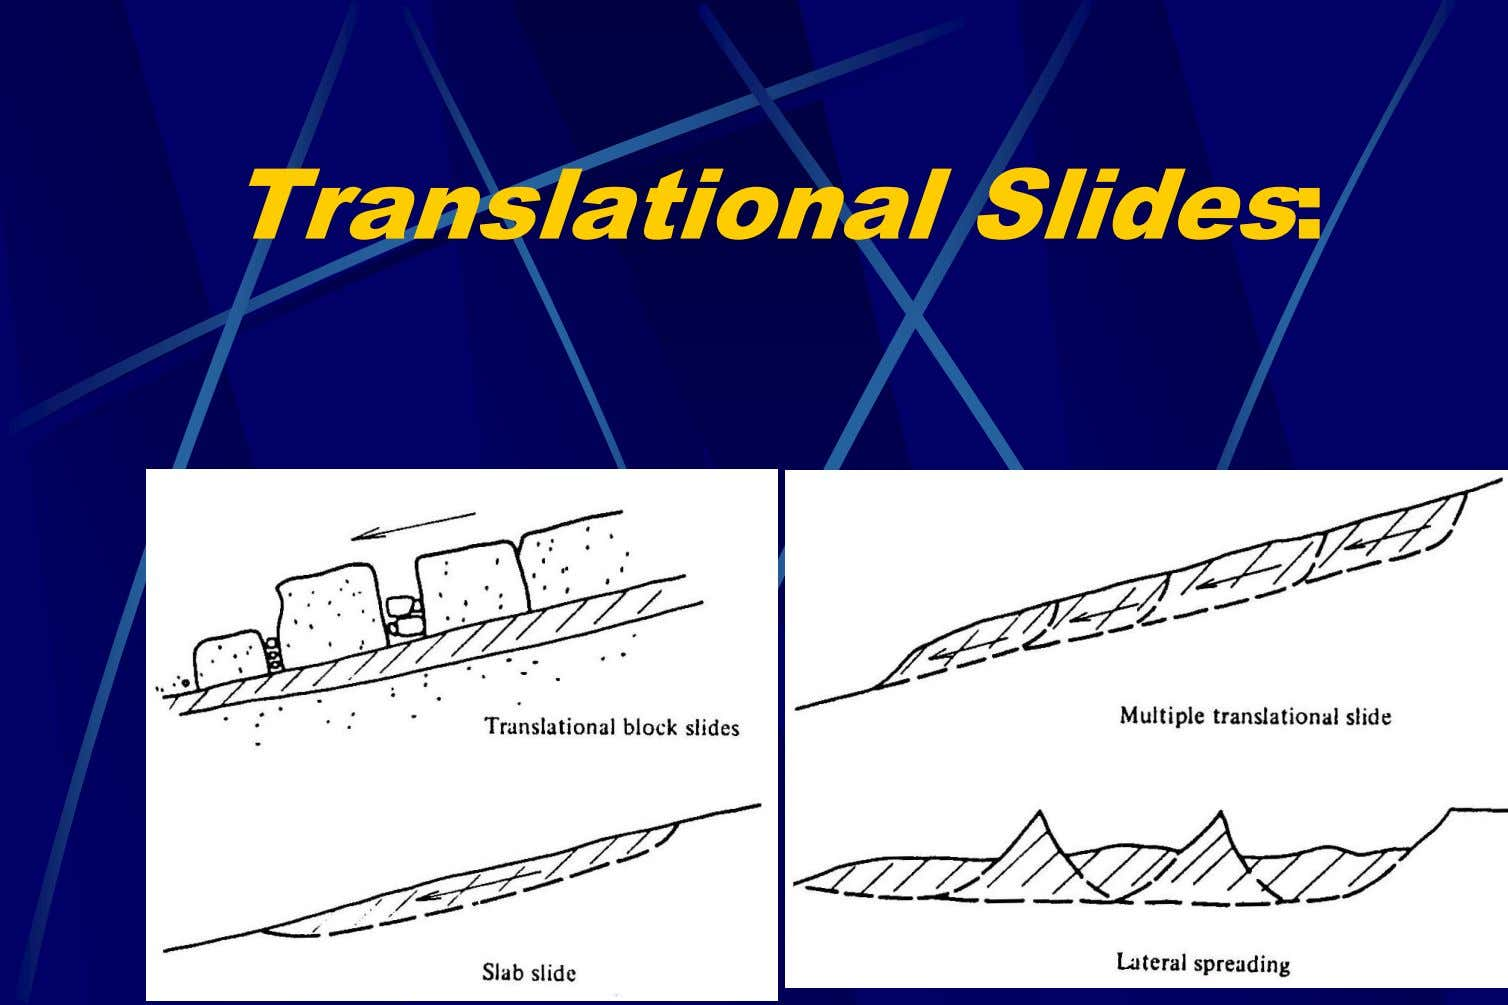 Translational Slides: